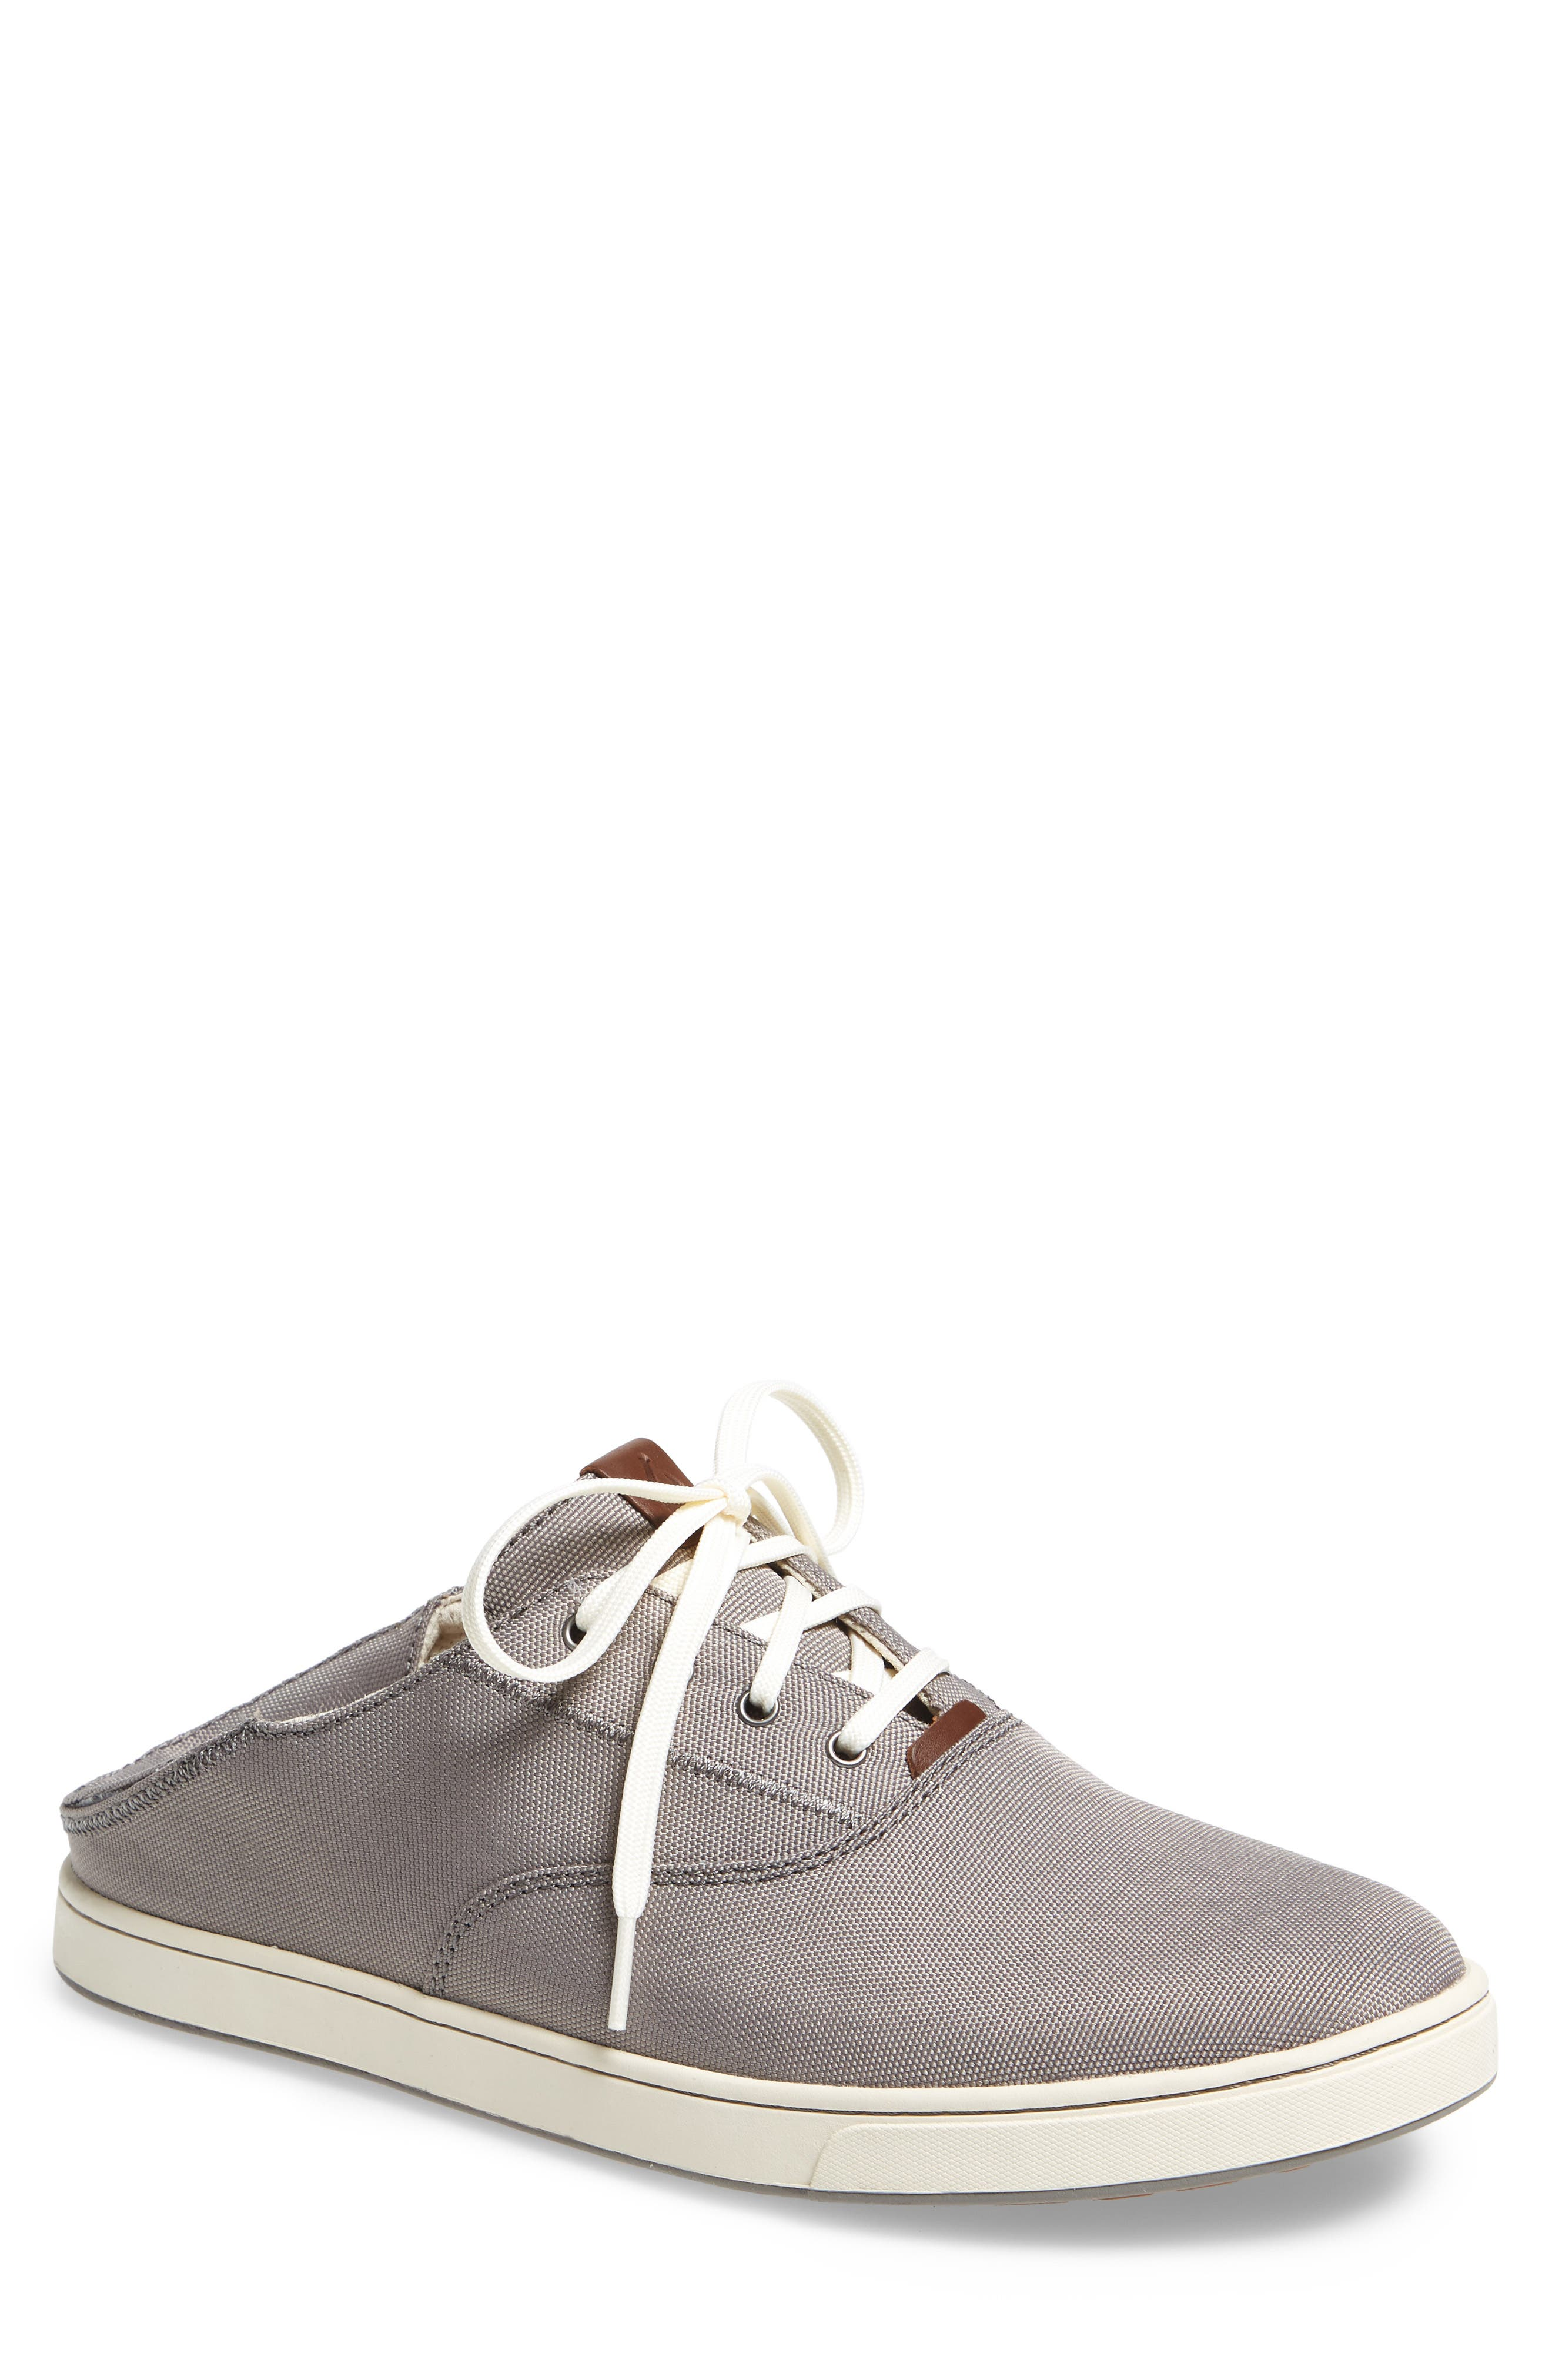 Kahu Collapsible Lace-Up Sneaker,                         Main,                         color, 055